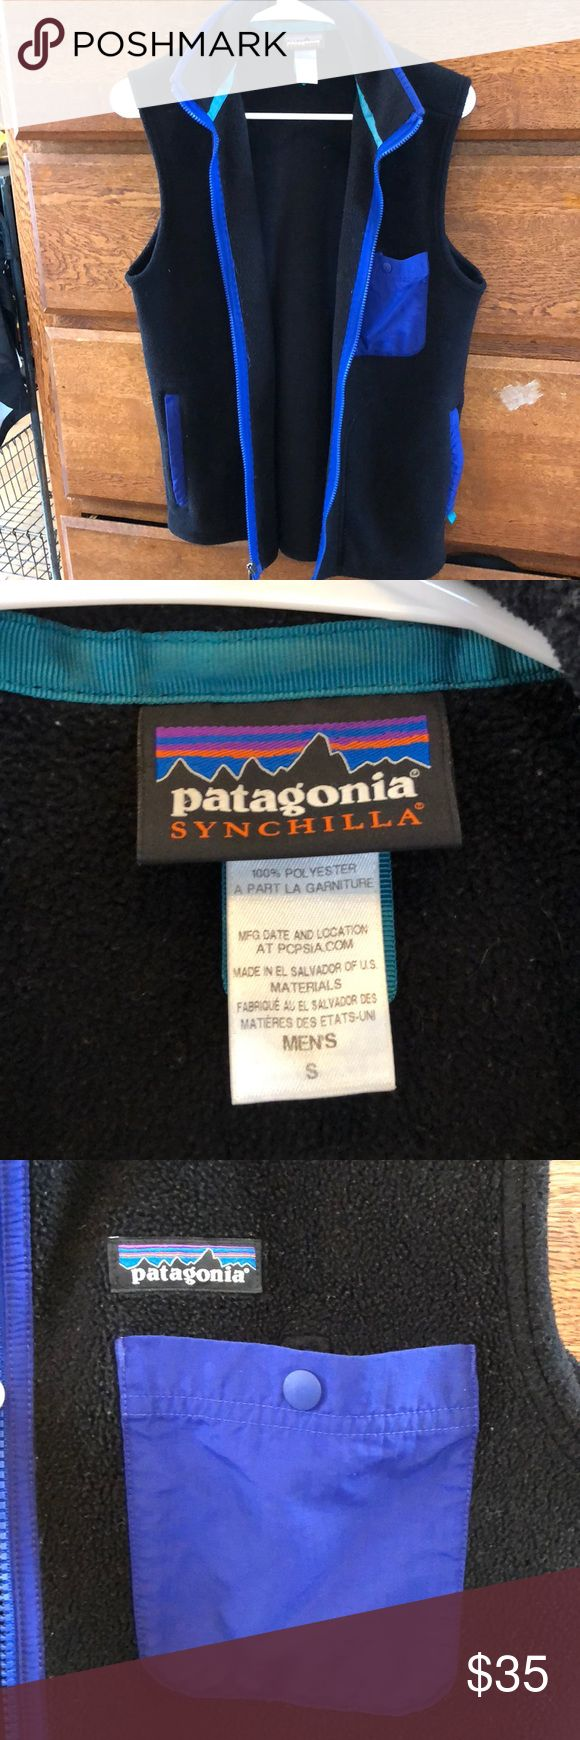 Patagonia Fleece Vest Used black Patagonia Fleece Vest. Retro detailing and colors. Fleece is still very soft but there is some pre-pilling. Patagonia Jackets & Coats Vests